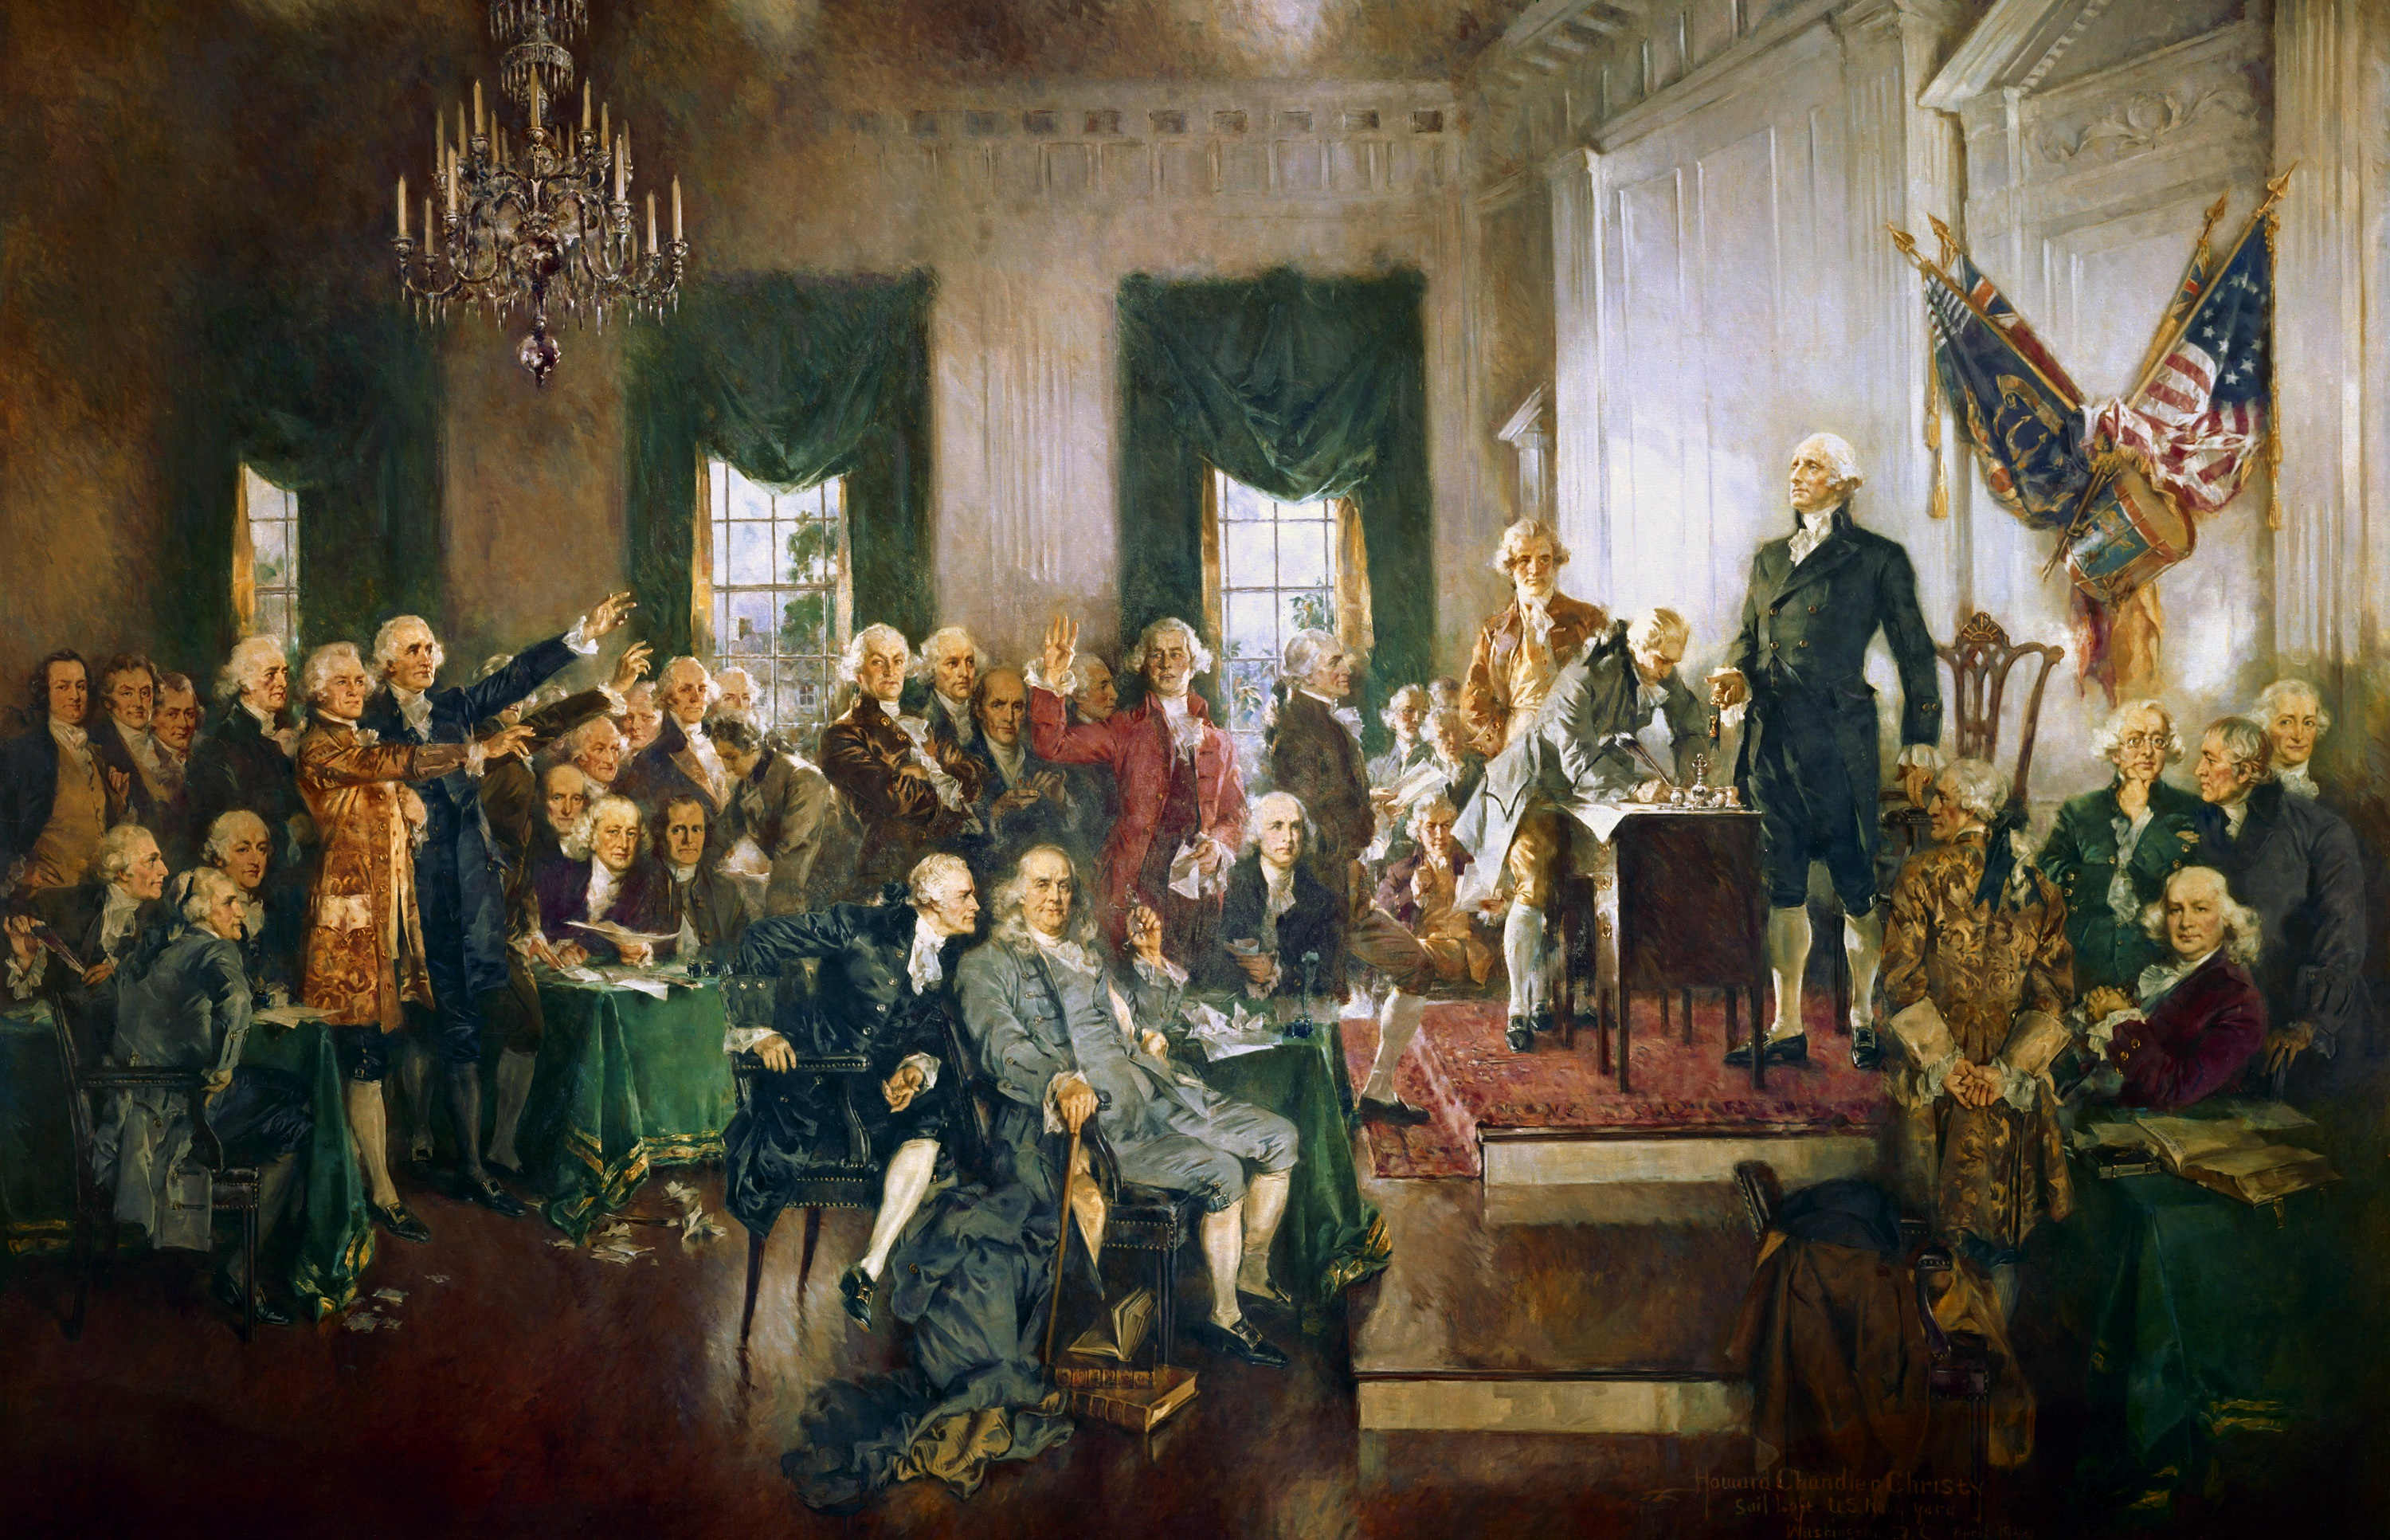 https://upload.wikimedia.org/wikipedia/commons/9/9d/Scene_at_the_Signing_of_the_Constitution_of_the_United_States.jpg